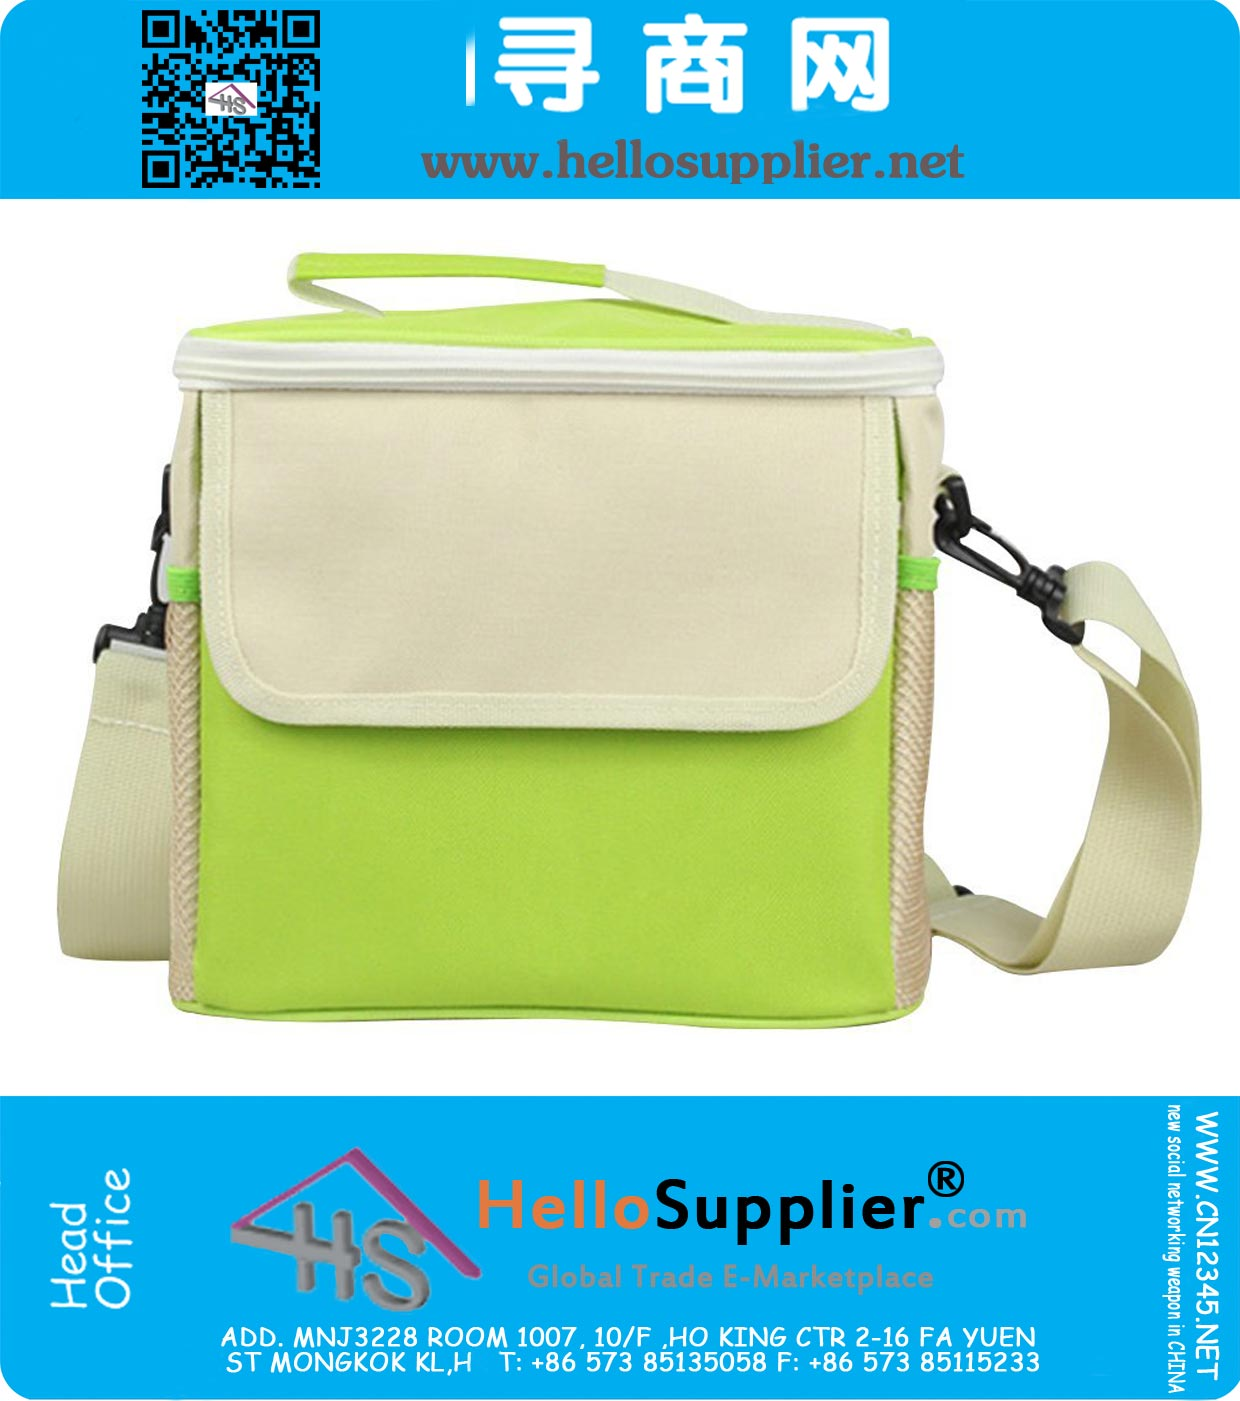 Freezable Lunch Bags Insulated Cool Shoulder Bag Lunch Box Container Picnic Cooler  Snack Tote Bag Travel c9db83ff441eb